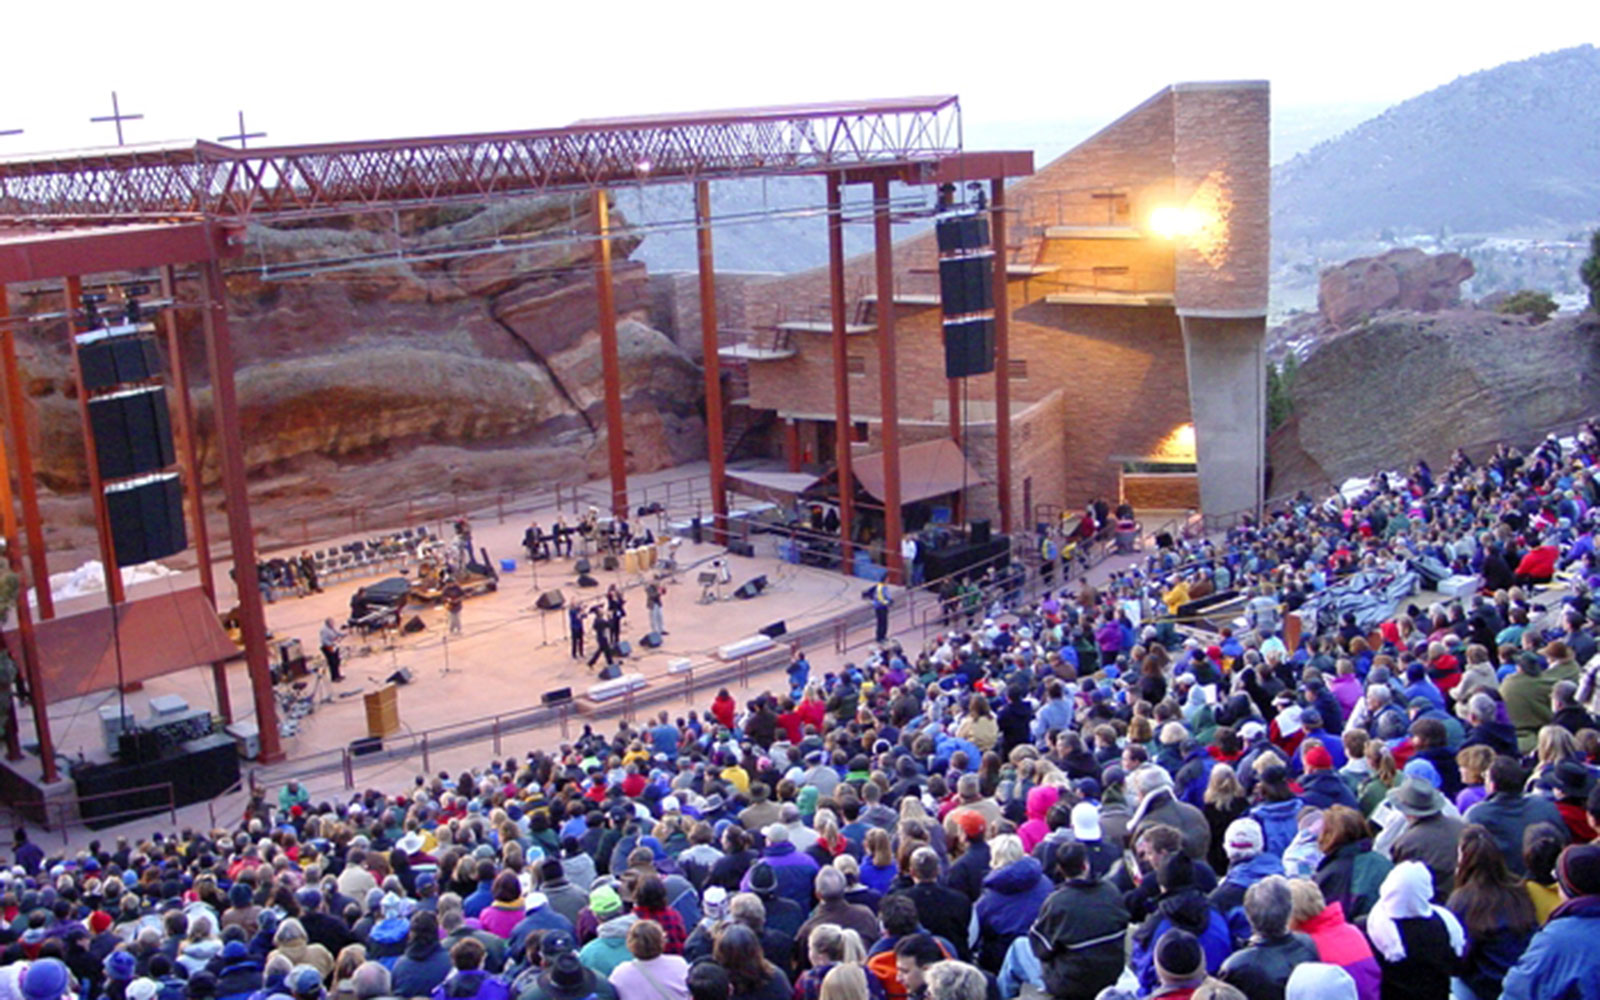 America's Coolest Music Venues: Red Rocks Amphitheatre